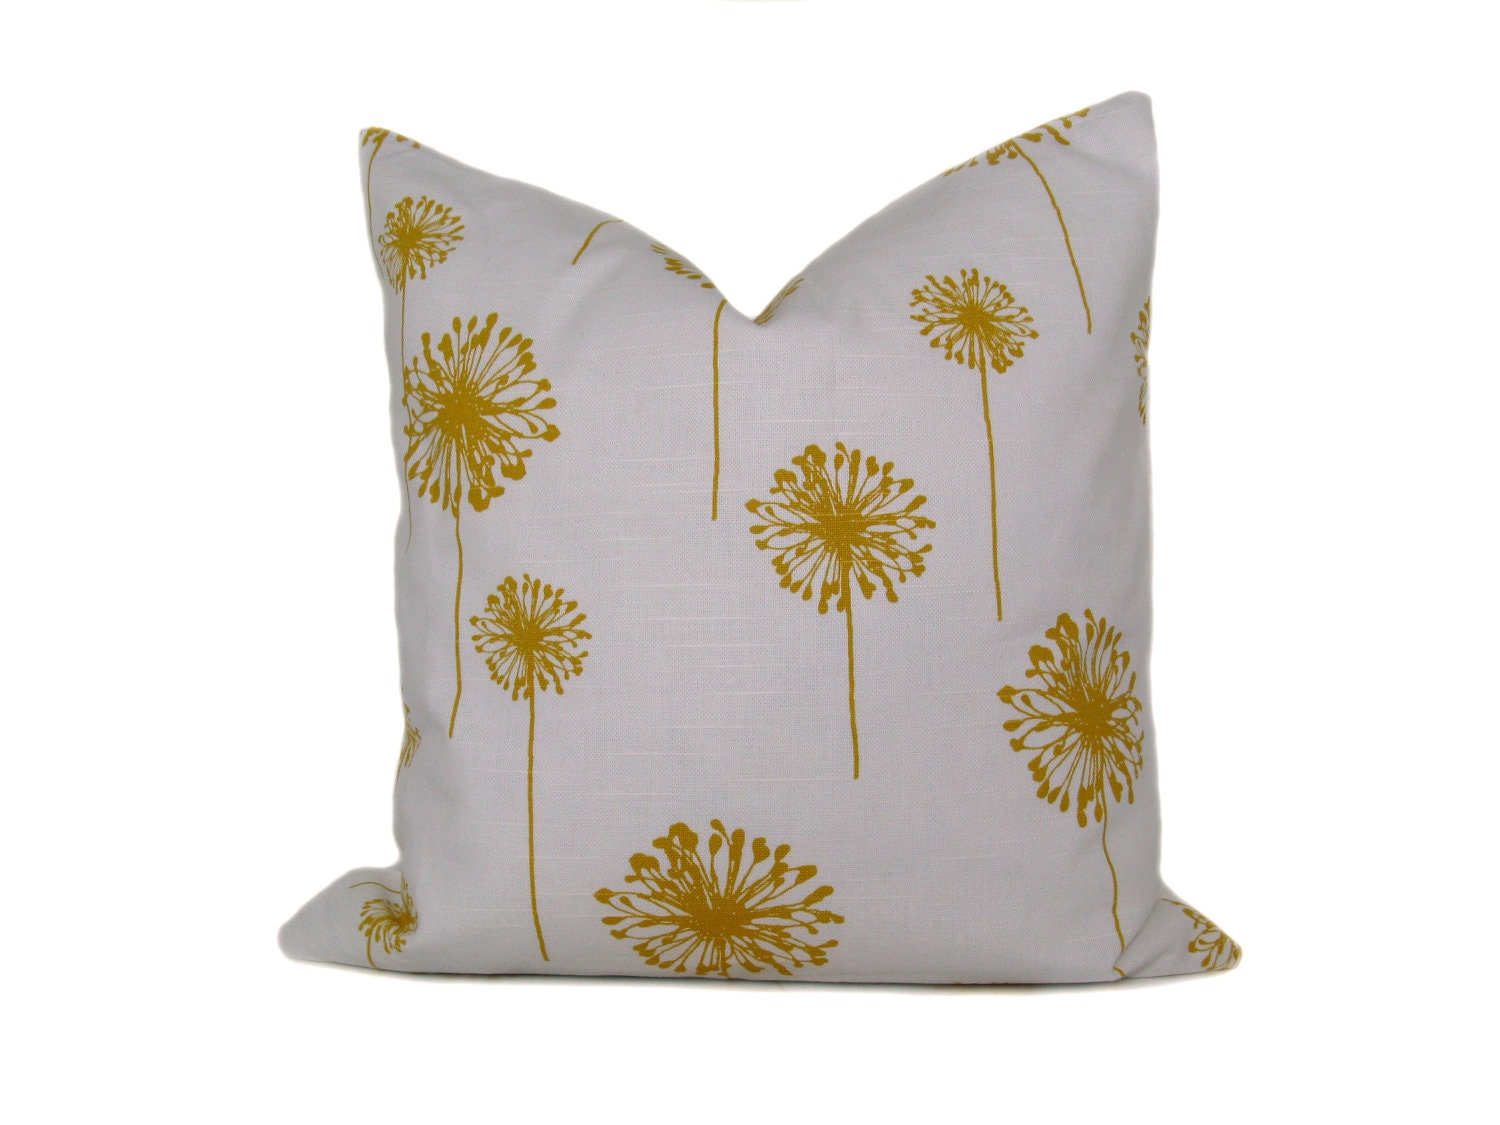 Throw Pillows With Covers : Pillow Yellow Pillow Decorative Throw Pillow Covers 16x16